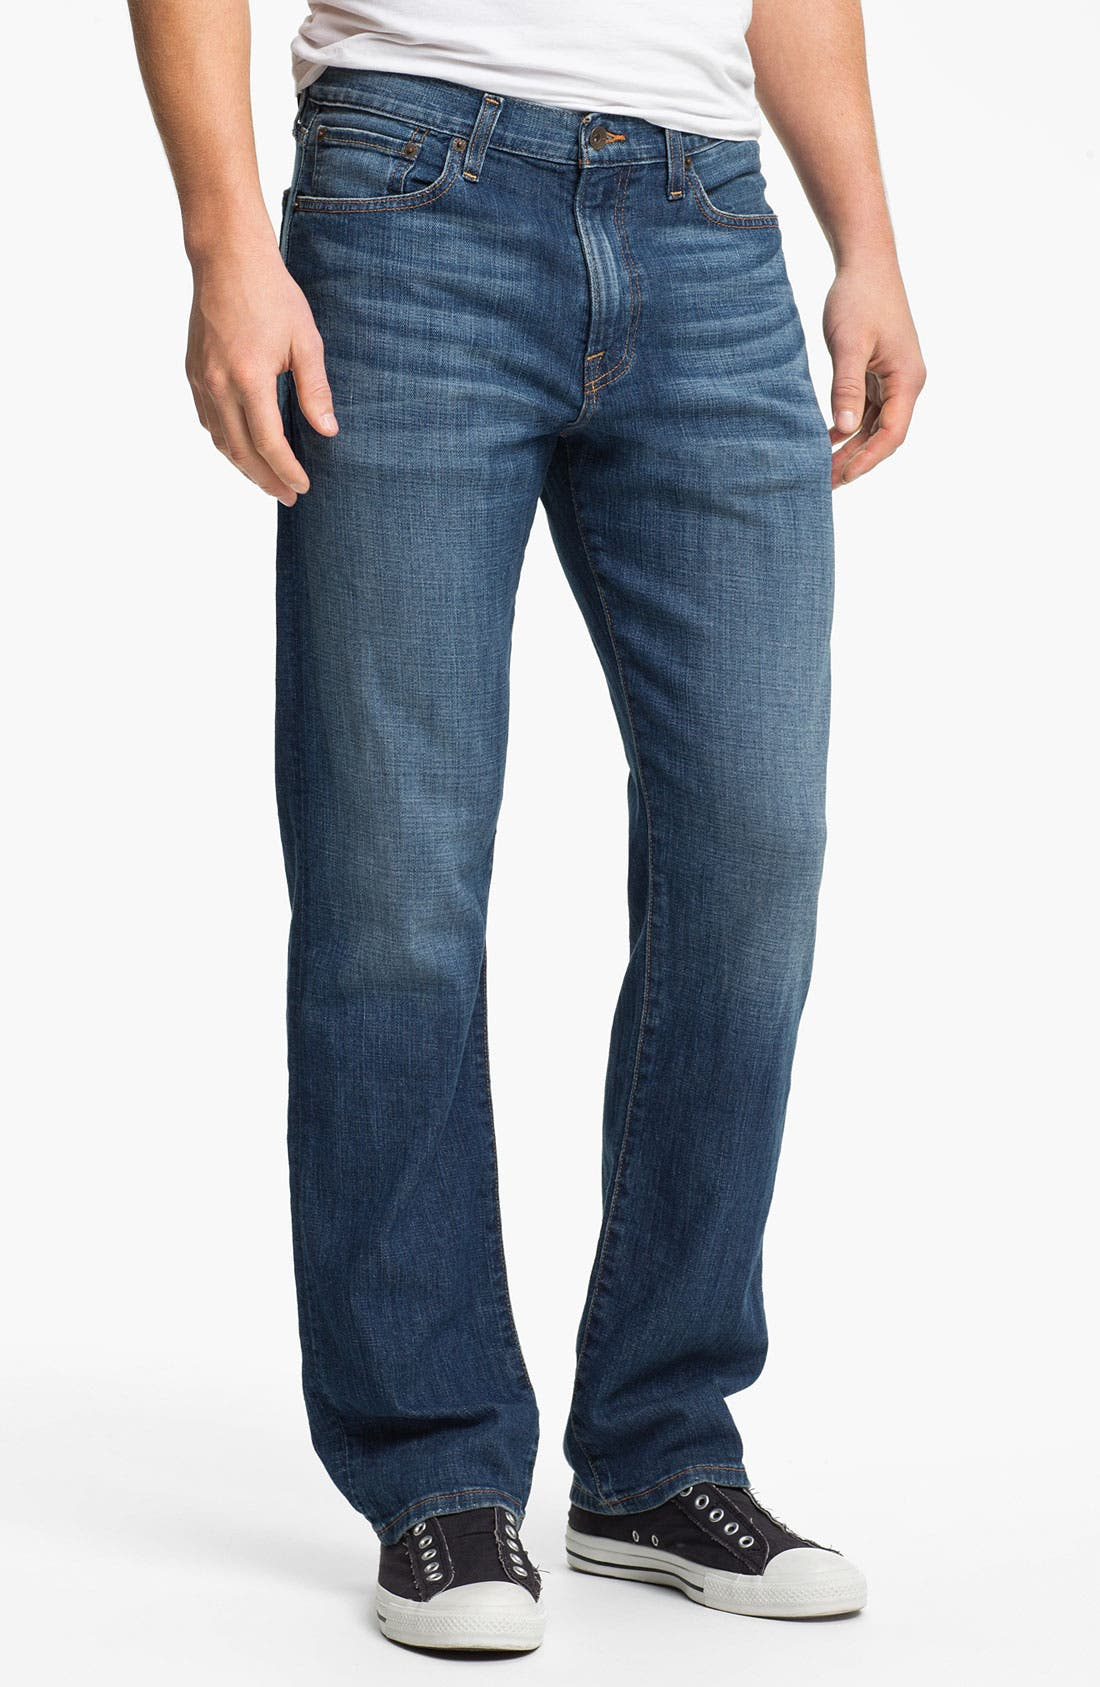 Alternate Image 1 Selected - Lucky Brand '329 Classic' Straight Leg Jeans (Zenith Point)